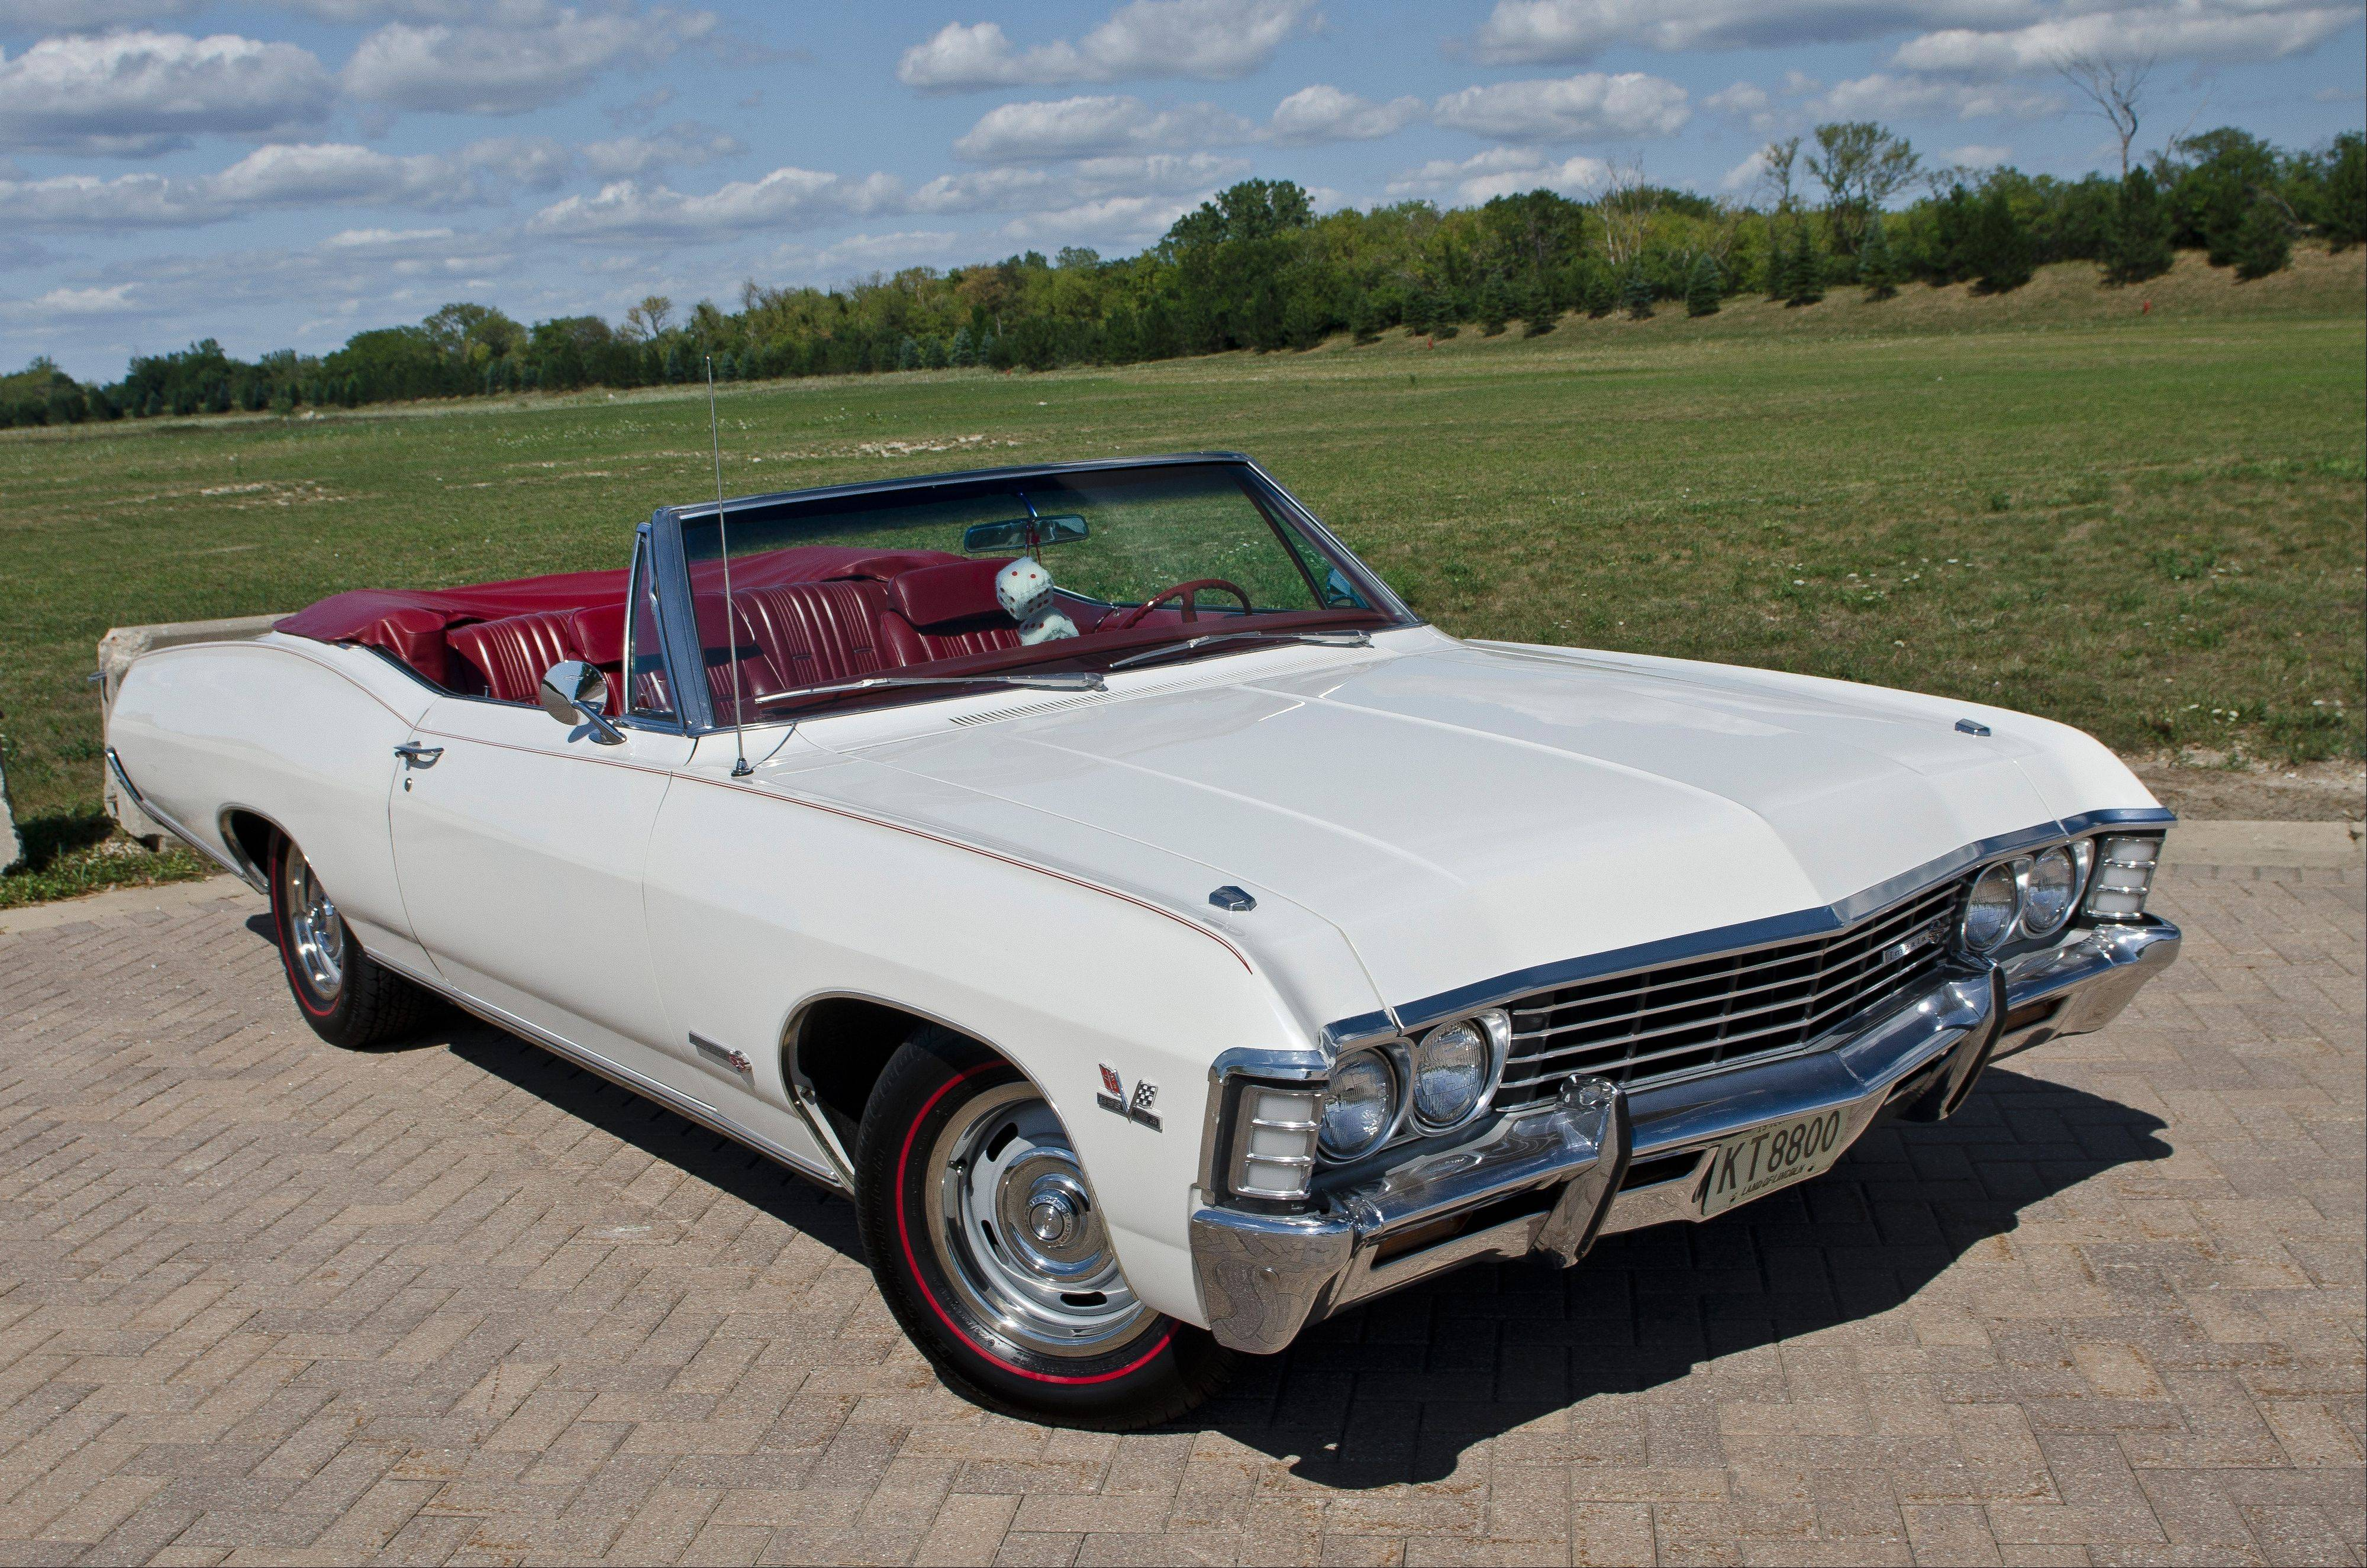 The Porzak's 1967 Impala SS convertible was located in Long Island, N.Y., and packs plenty of rare options.